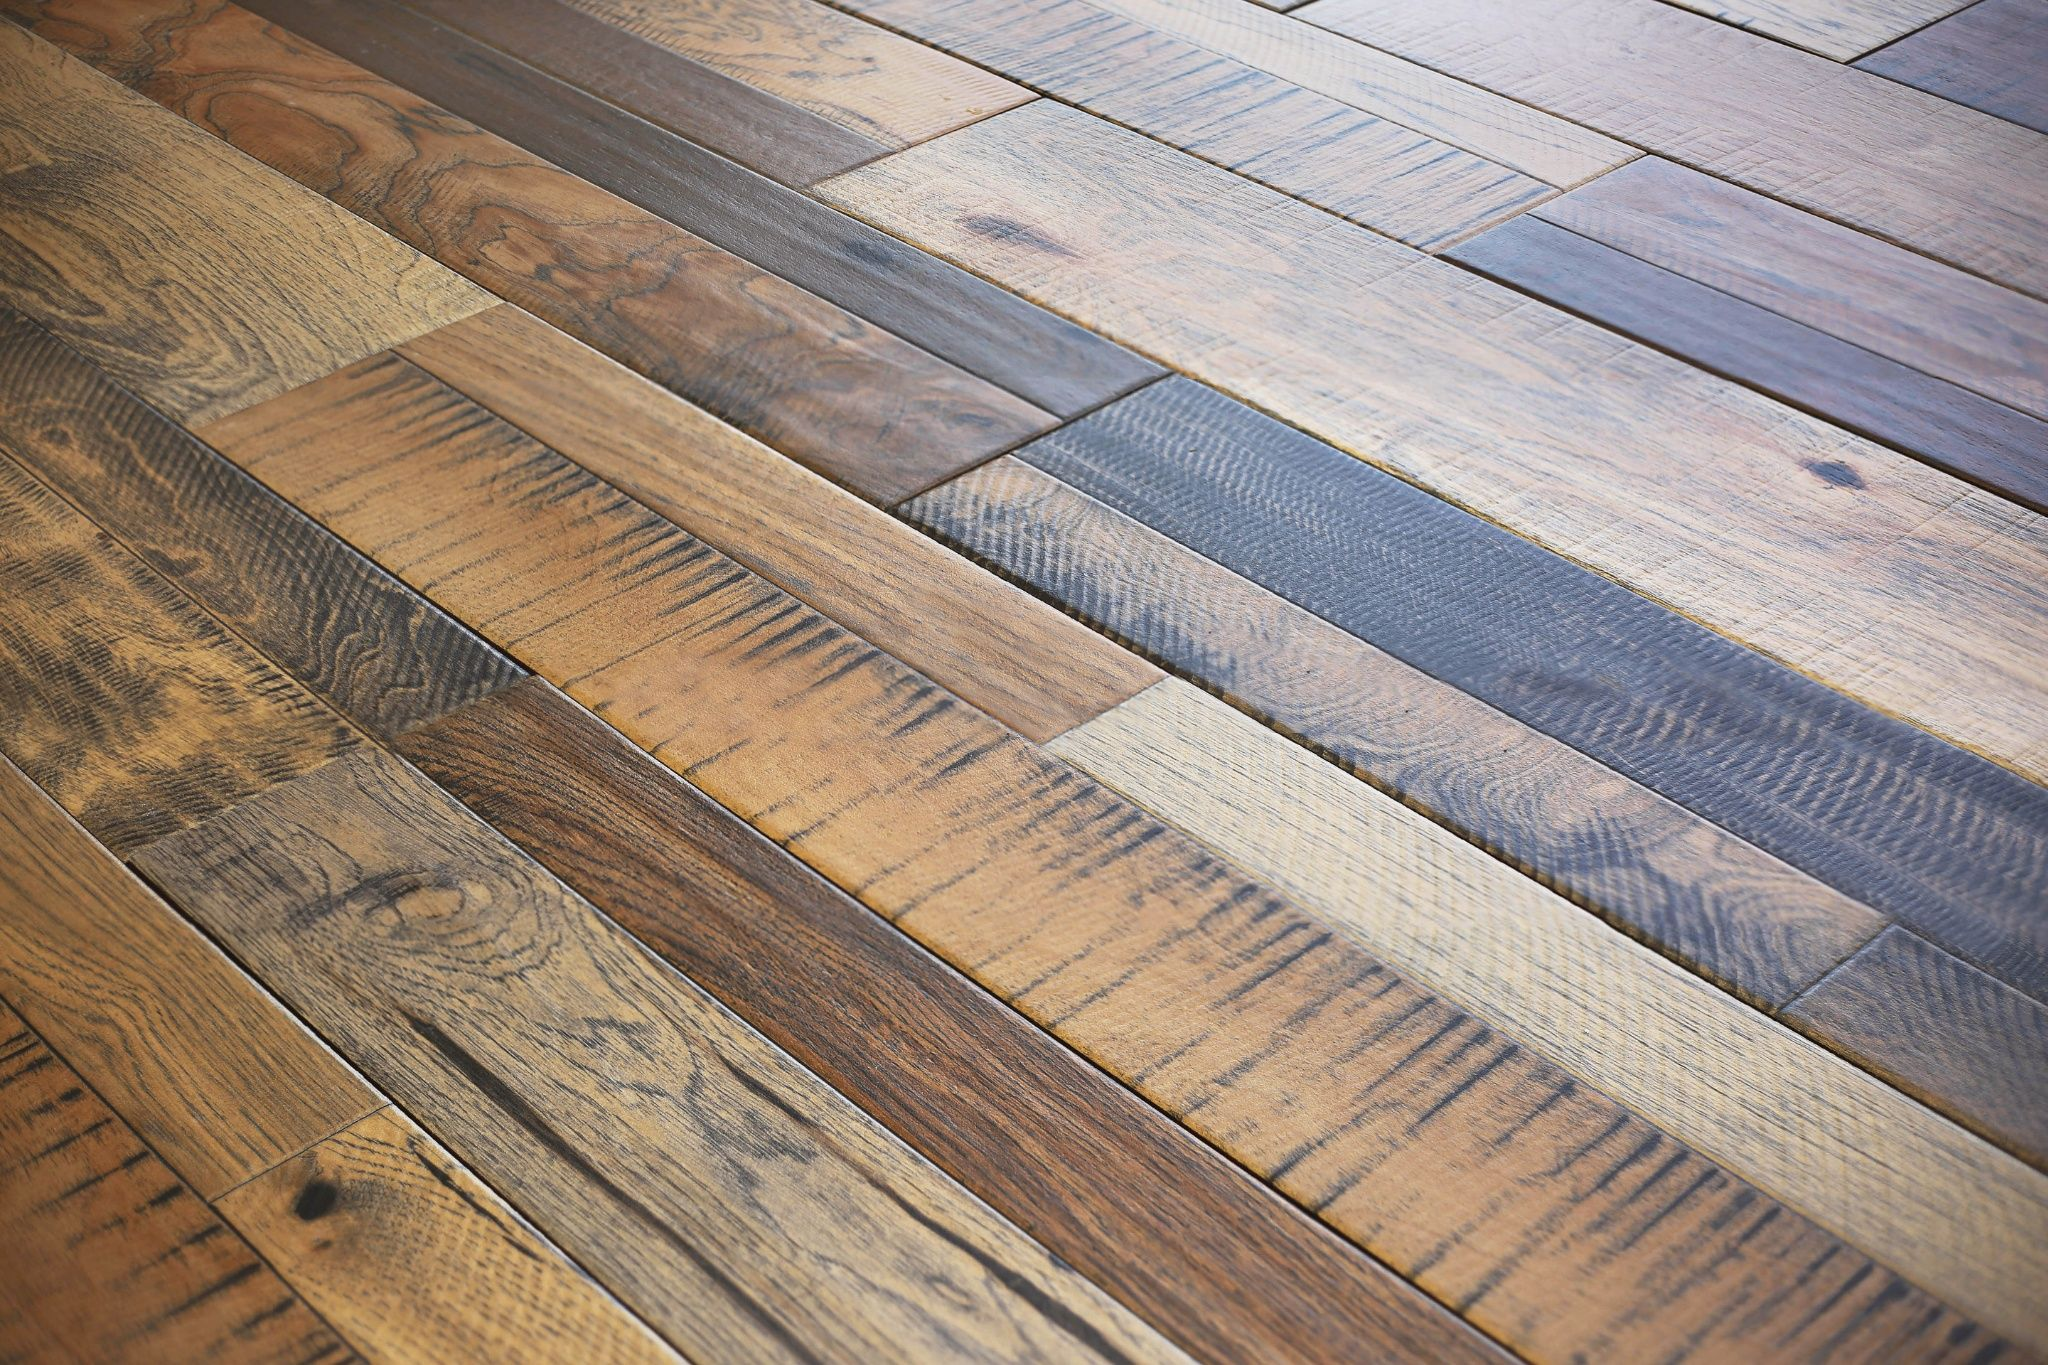 Reclaimed Wood Look Ceramic Floor Tile There Are Close To 60